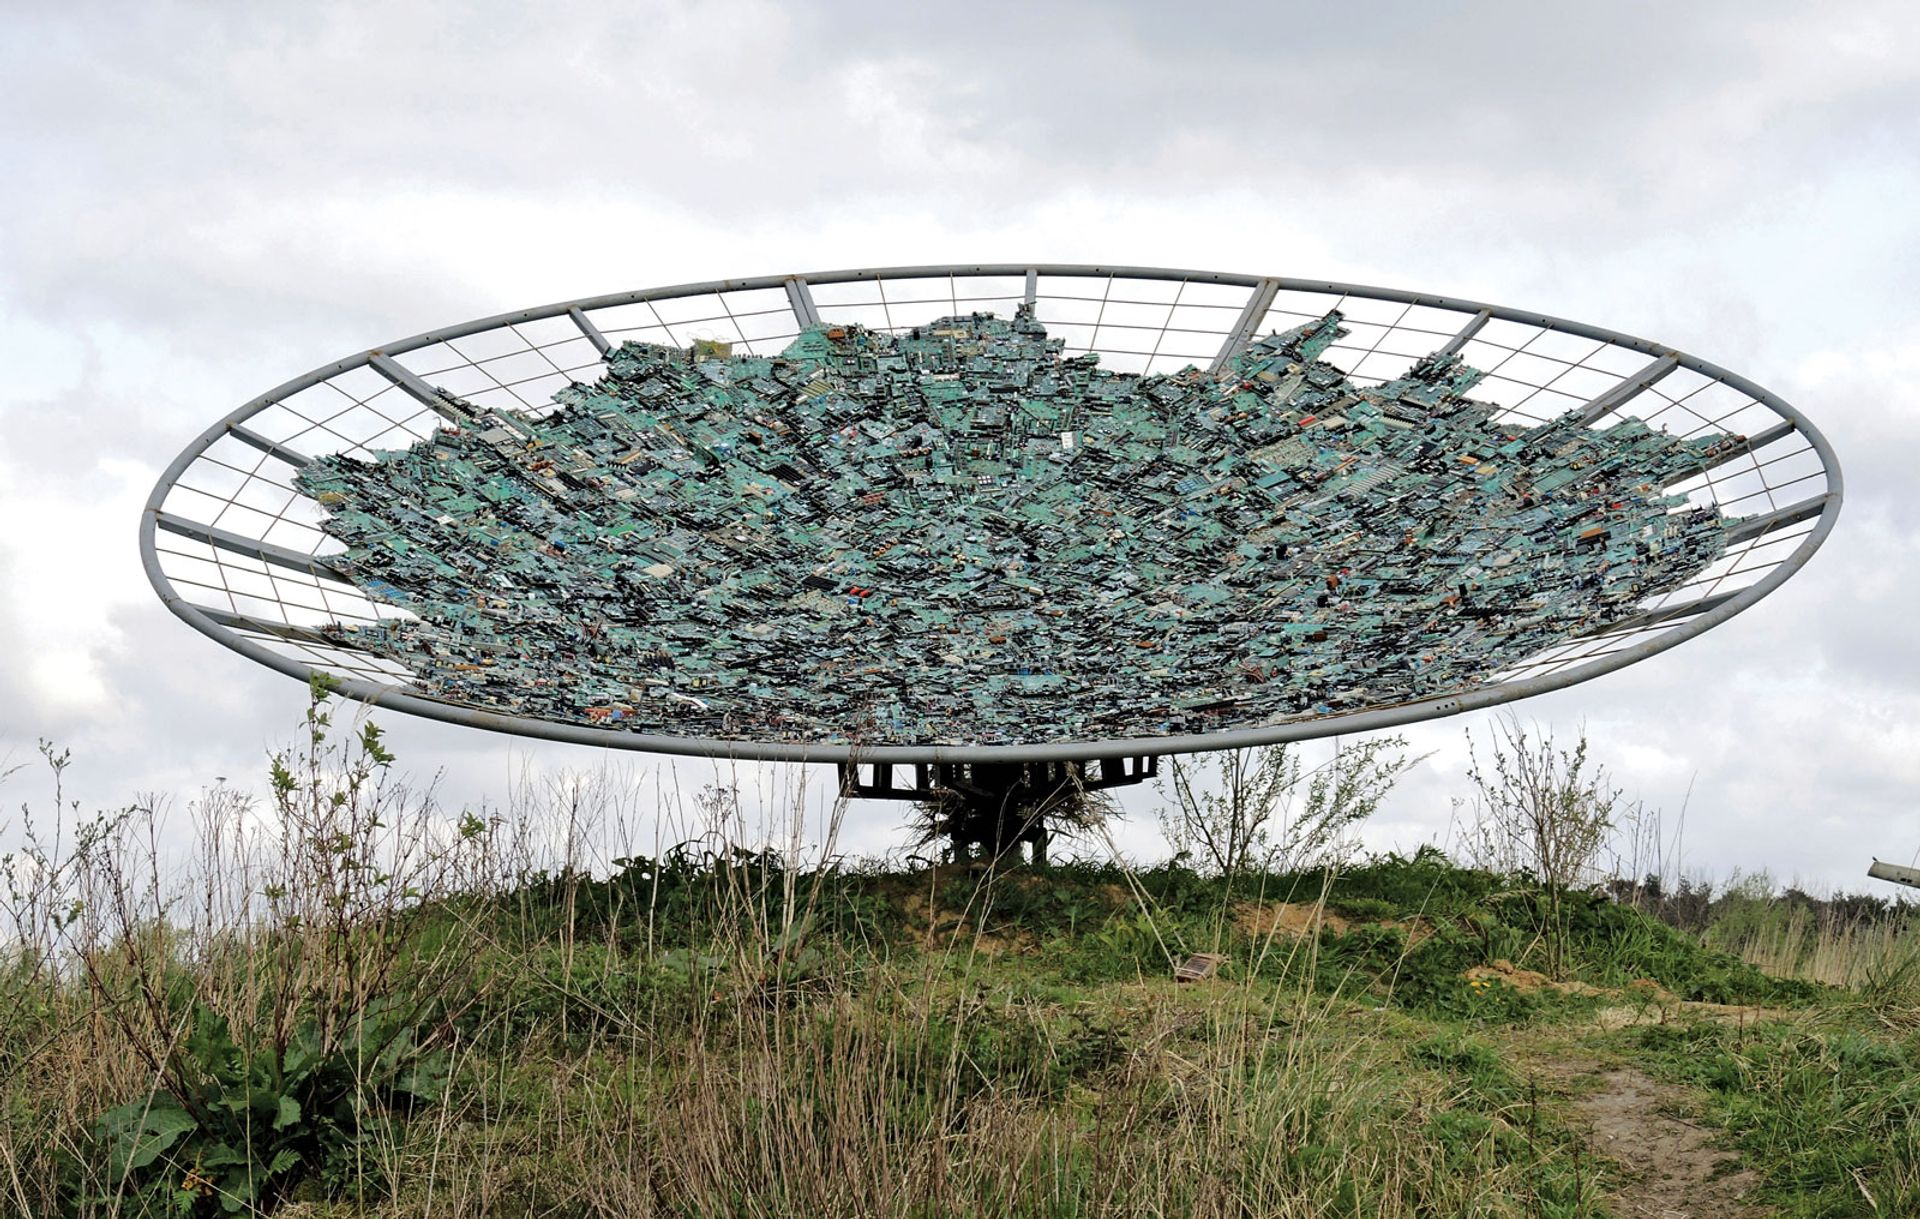 Cosmic Connection (2016) by Maarten Vanden Eynde. The Belgian artist will exhibit in Riga this month Courtesy of the artist and the Verbeke Foundation, Kemzeke, Belgium